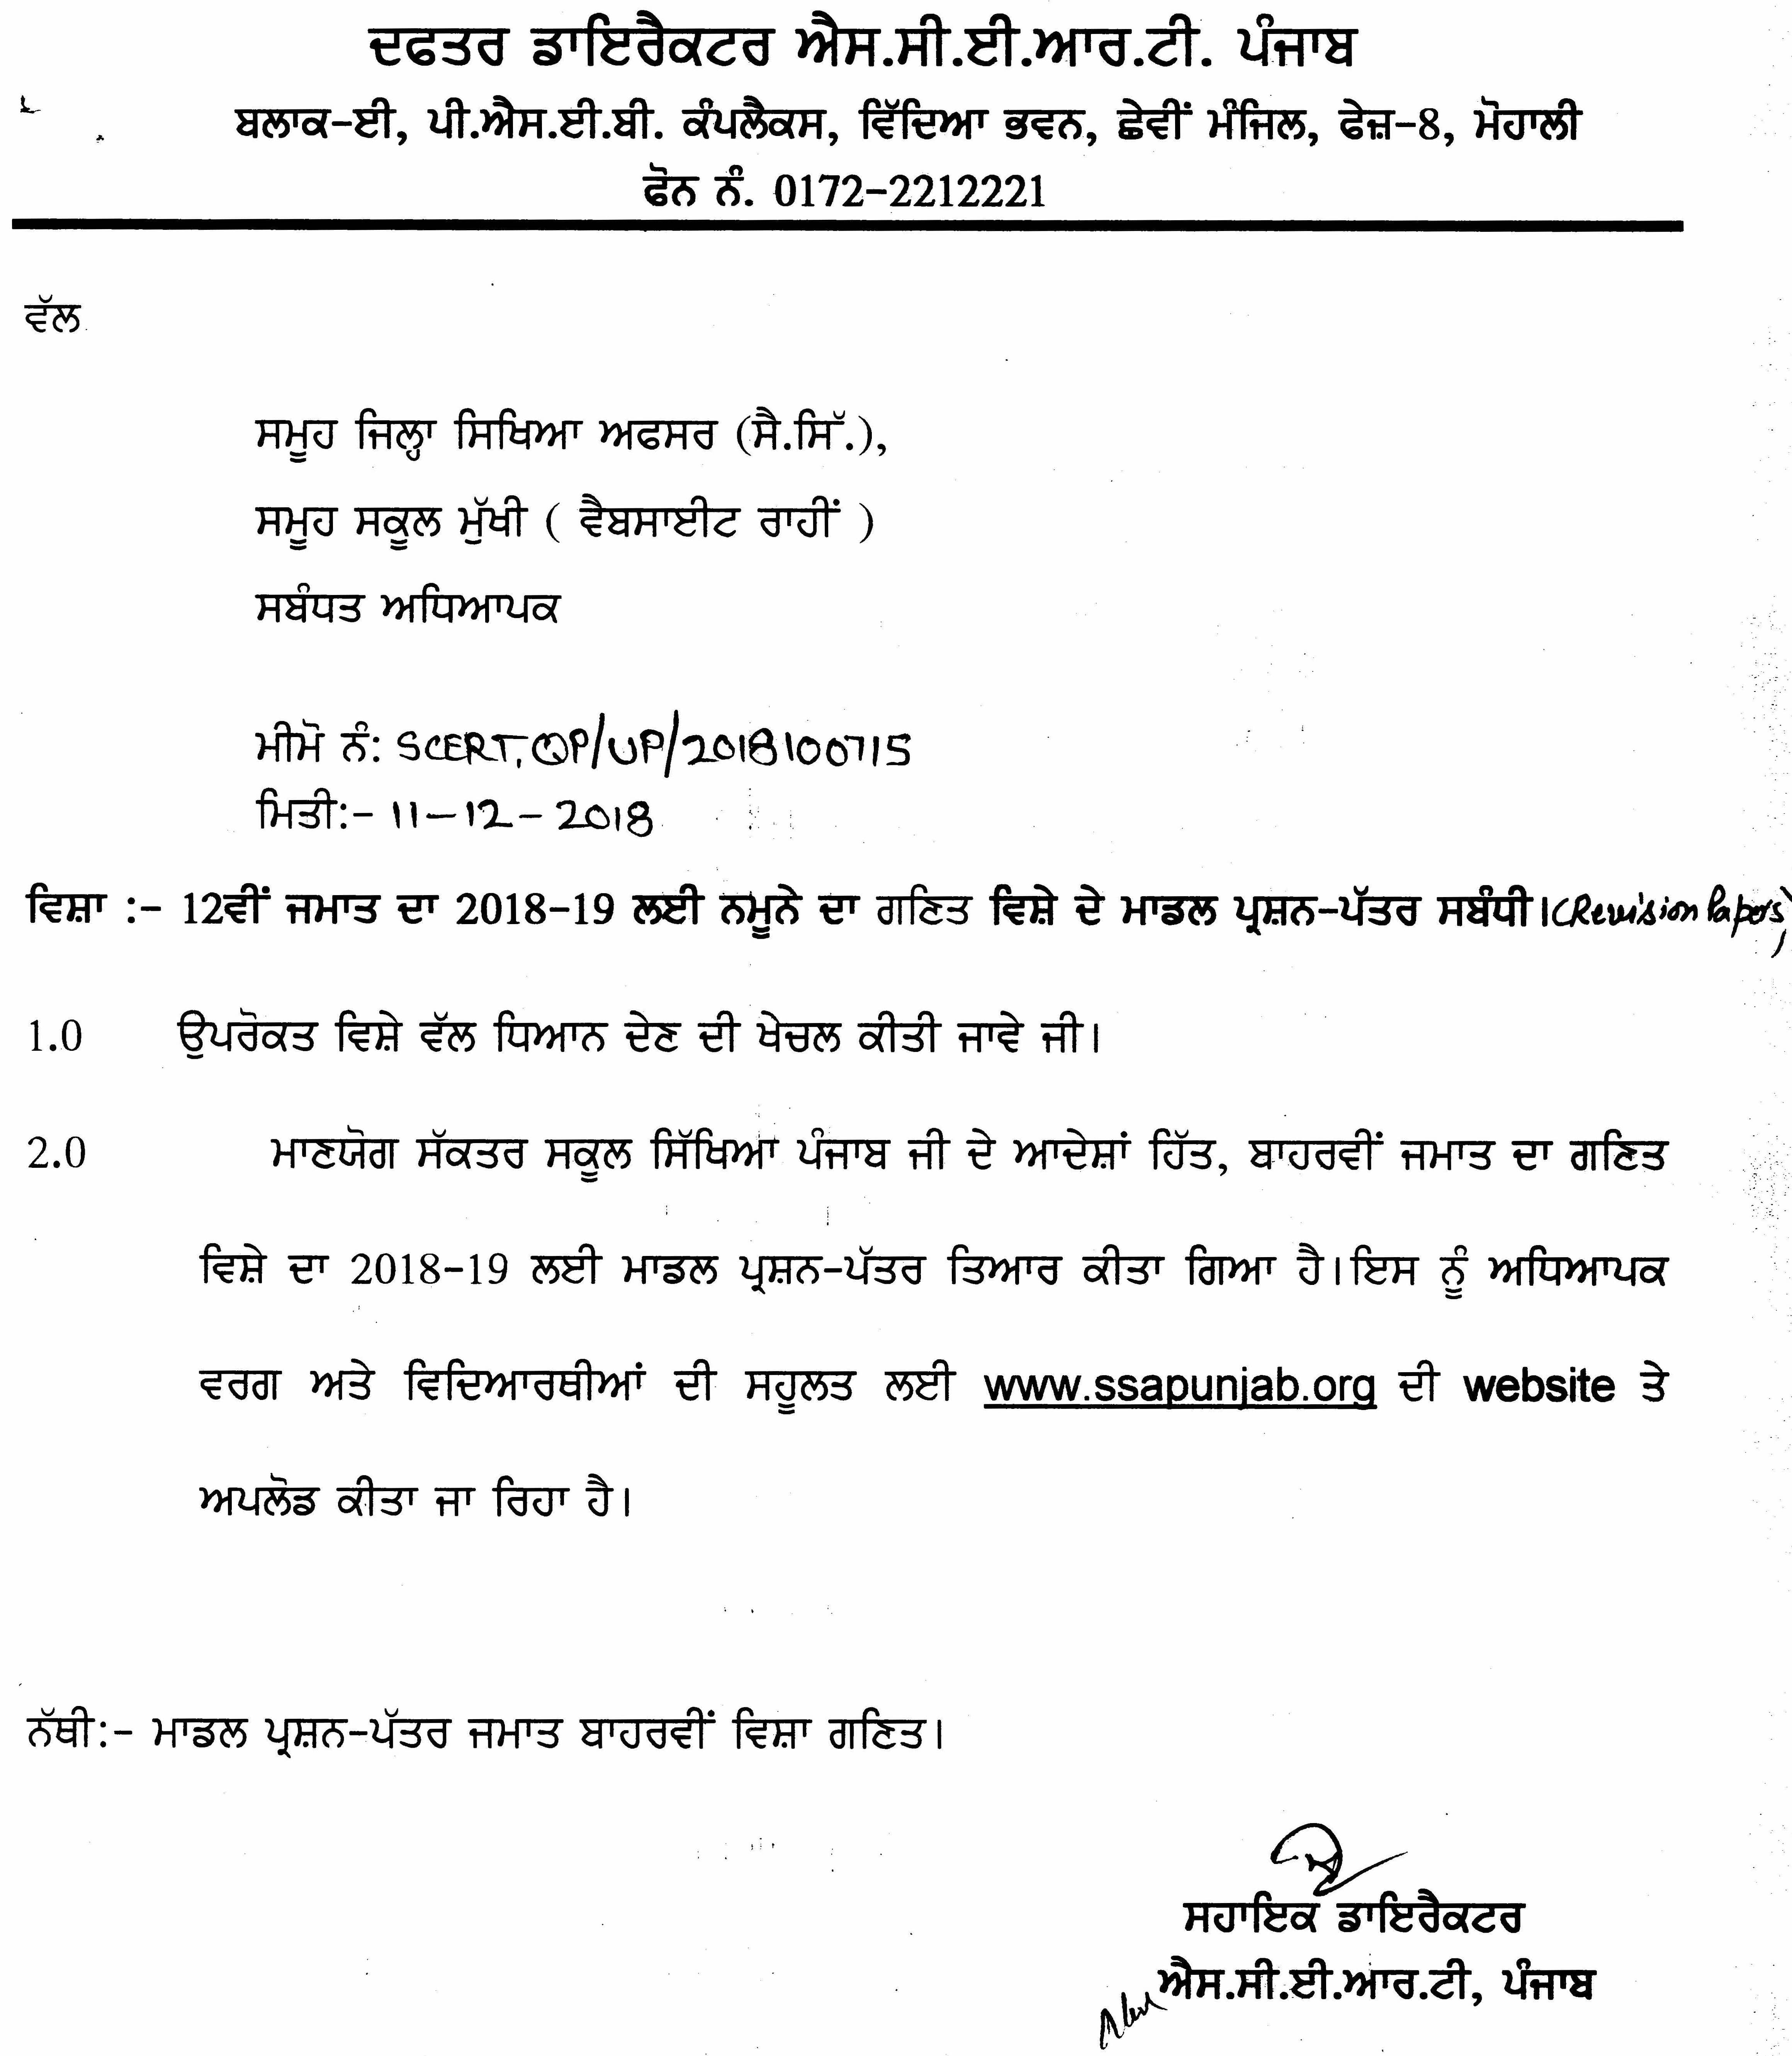 Model Question Paper for Class 12, Session 2018-19 – Punjab Govt